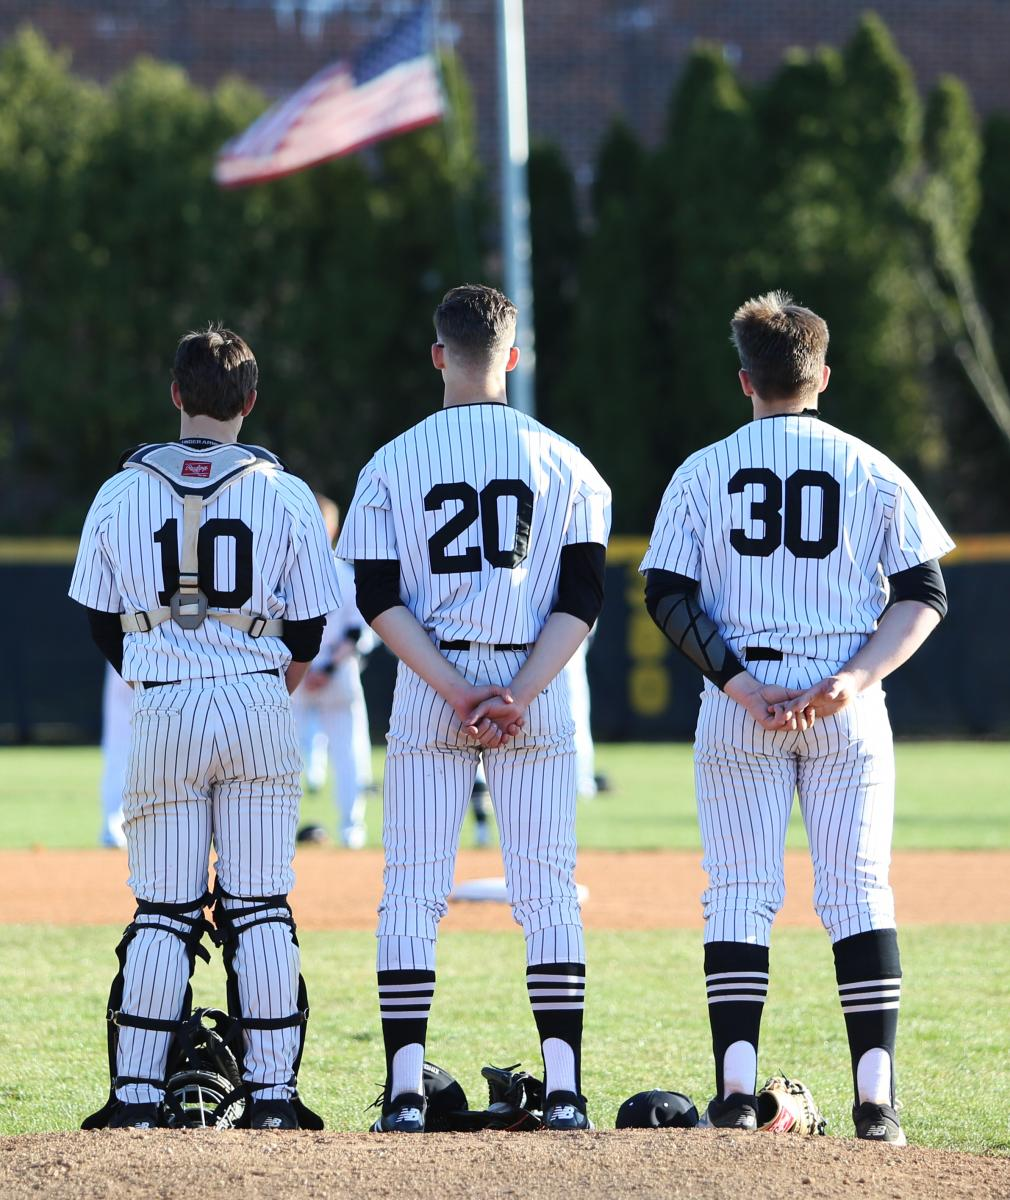 Penn Baseball players line up for the National Anthem.